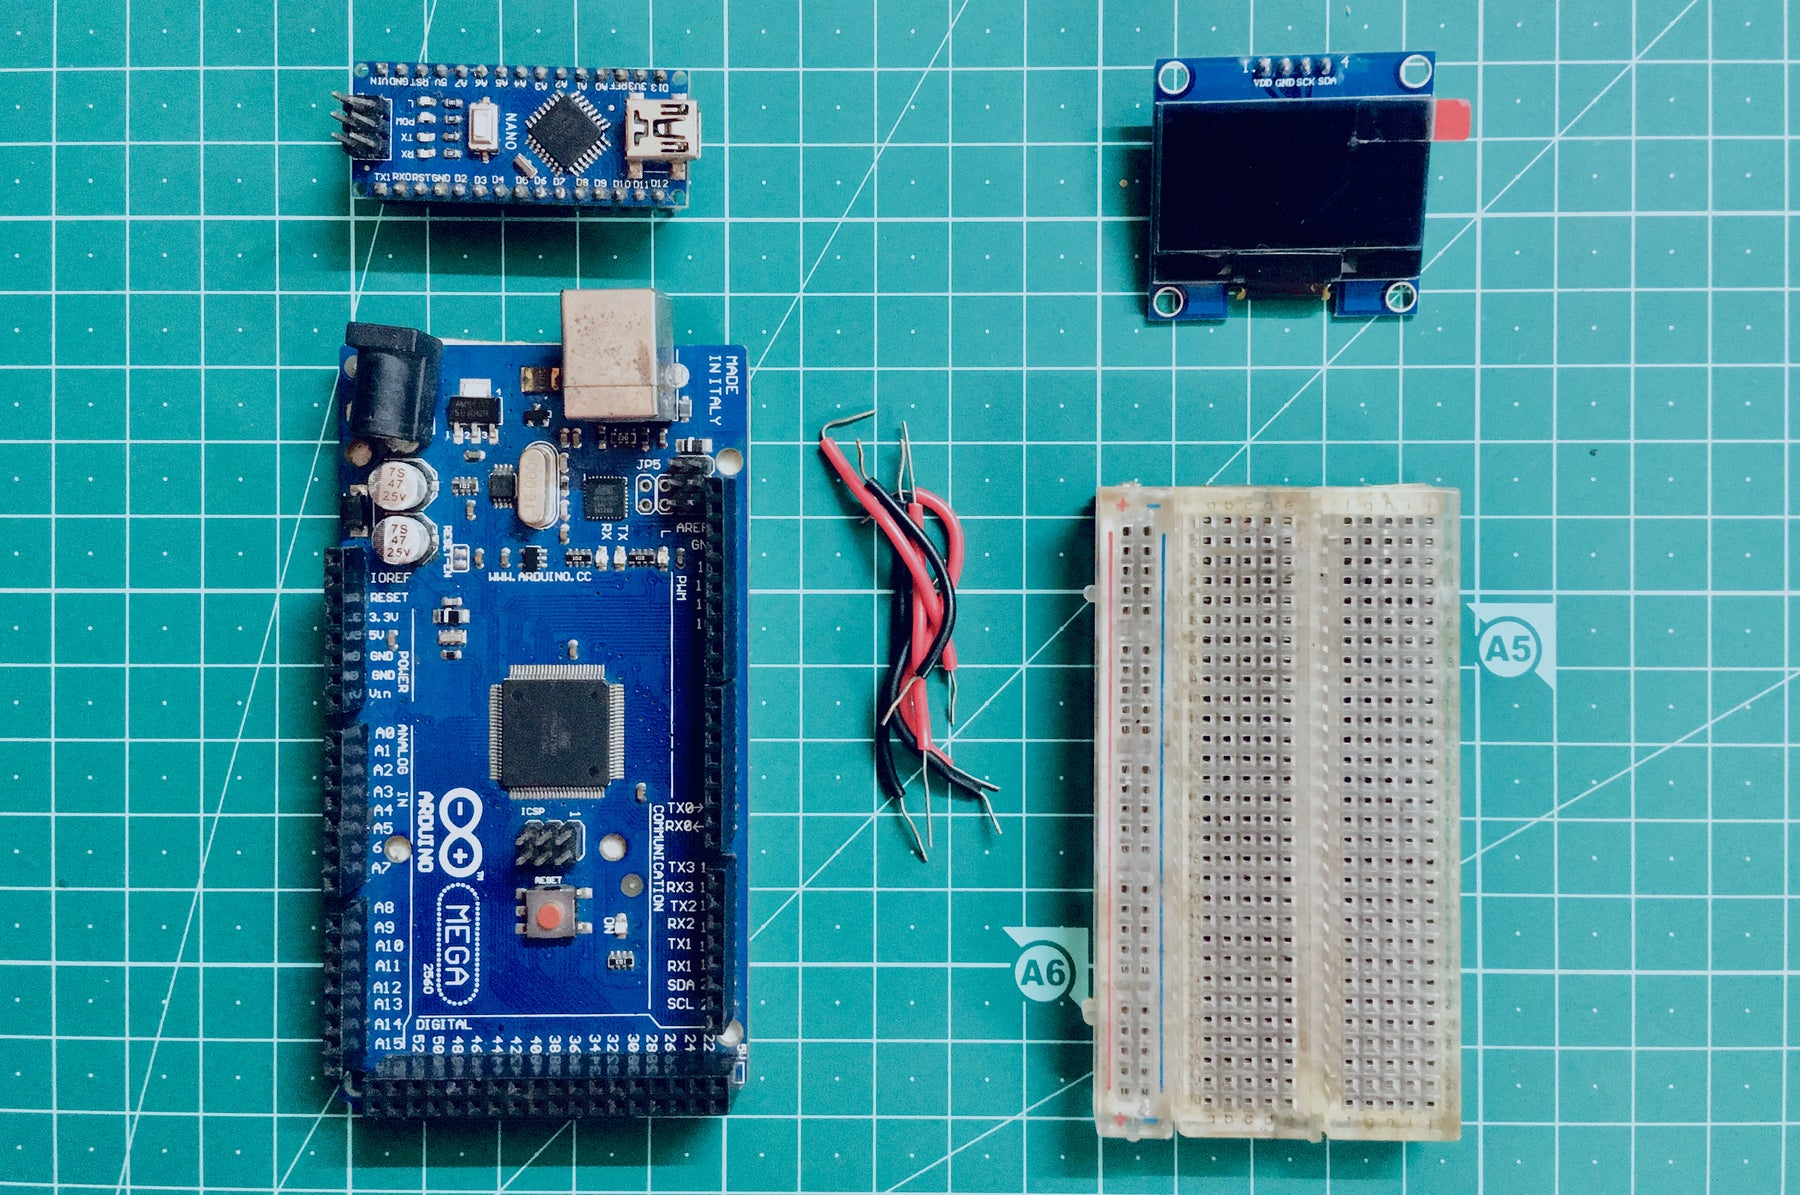 Interfacing a 128*64 OLED display with Arduino